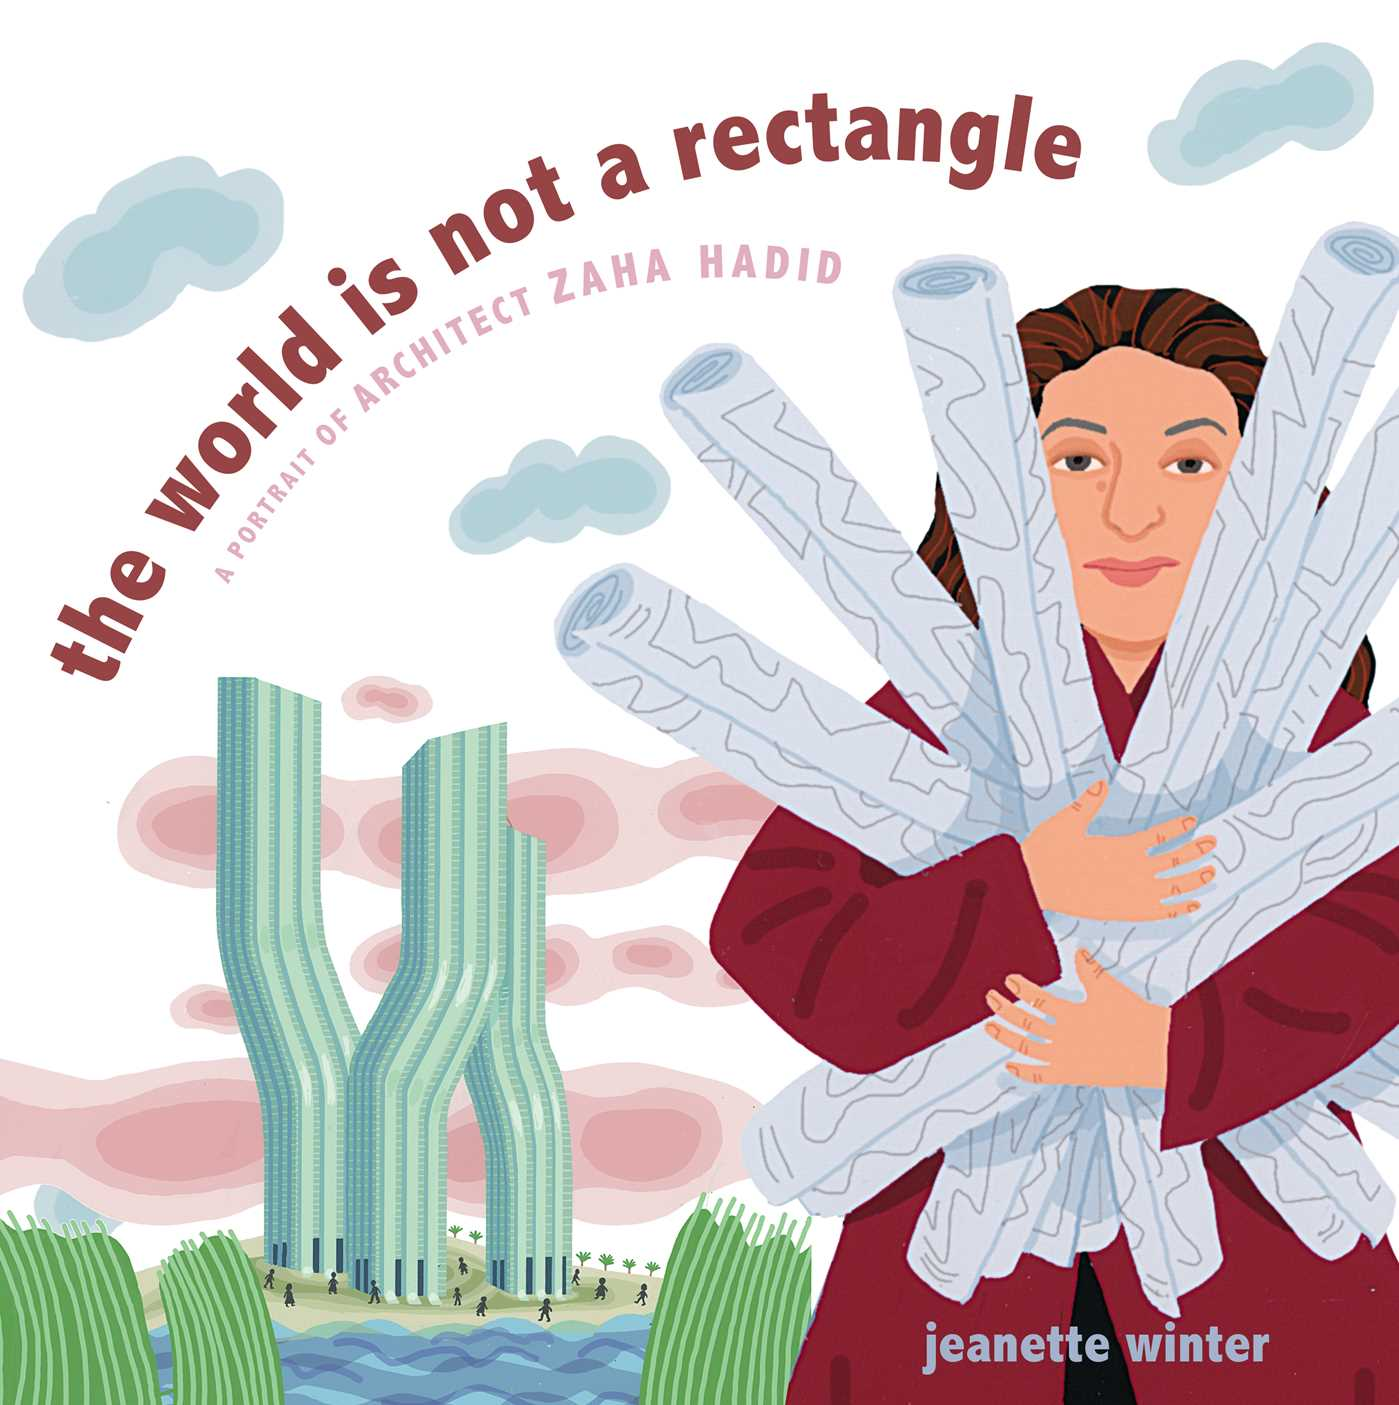 THe world is not a rectangle - book cover